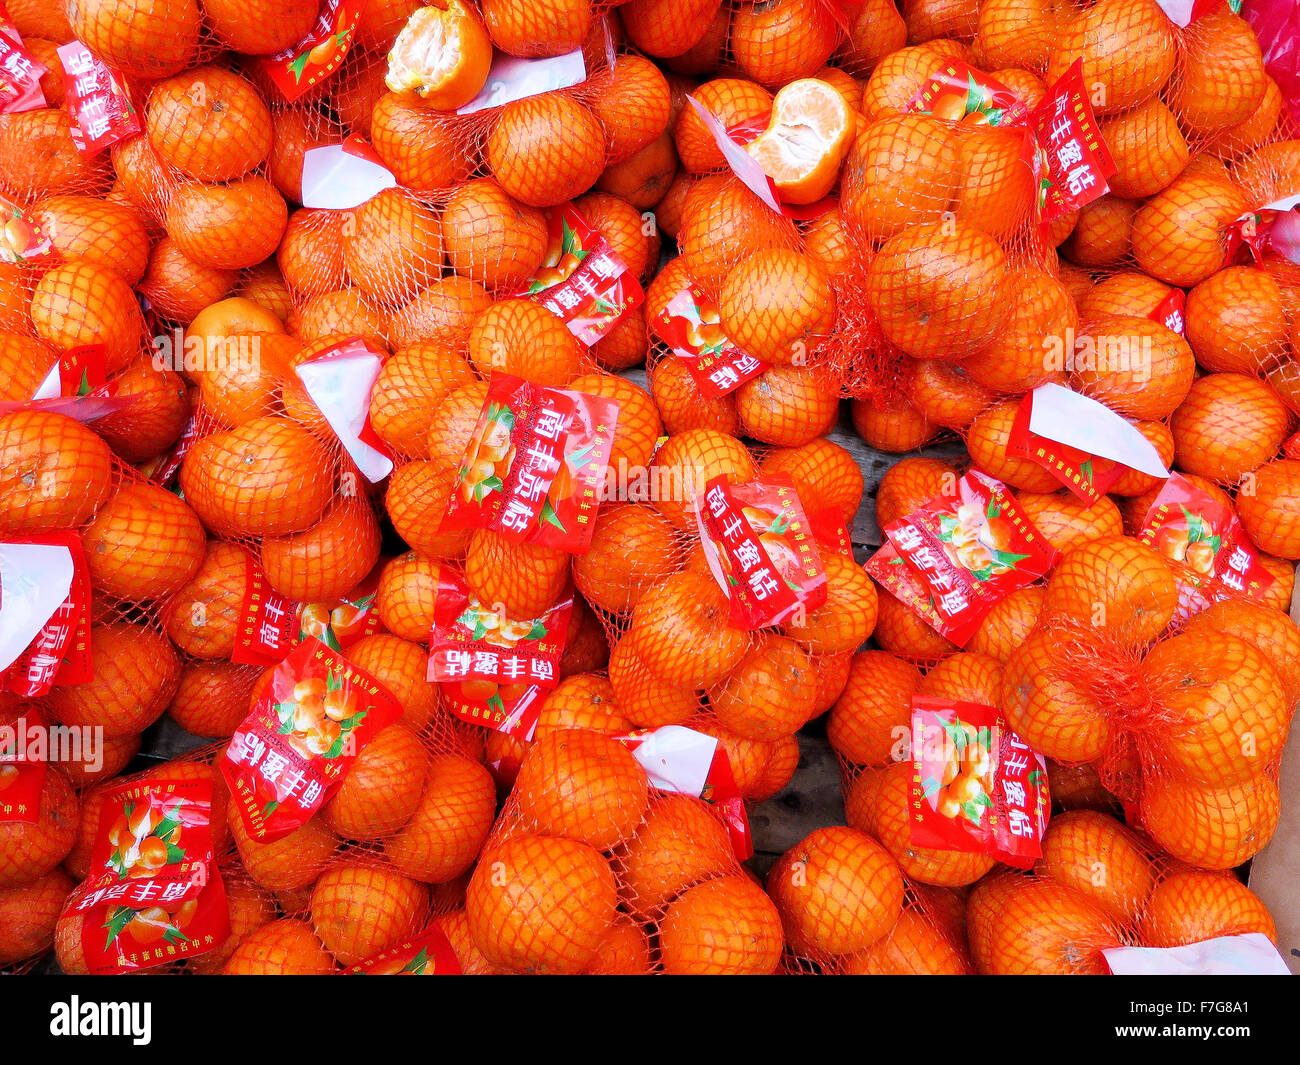 Oranges grown in and exported from Korea. - Stock Image